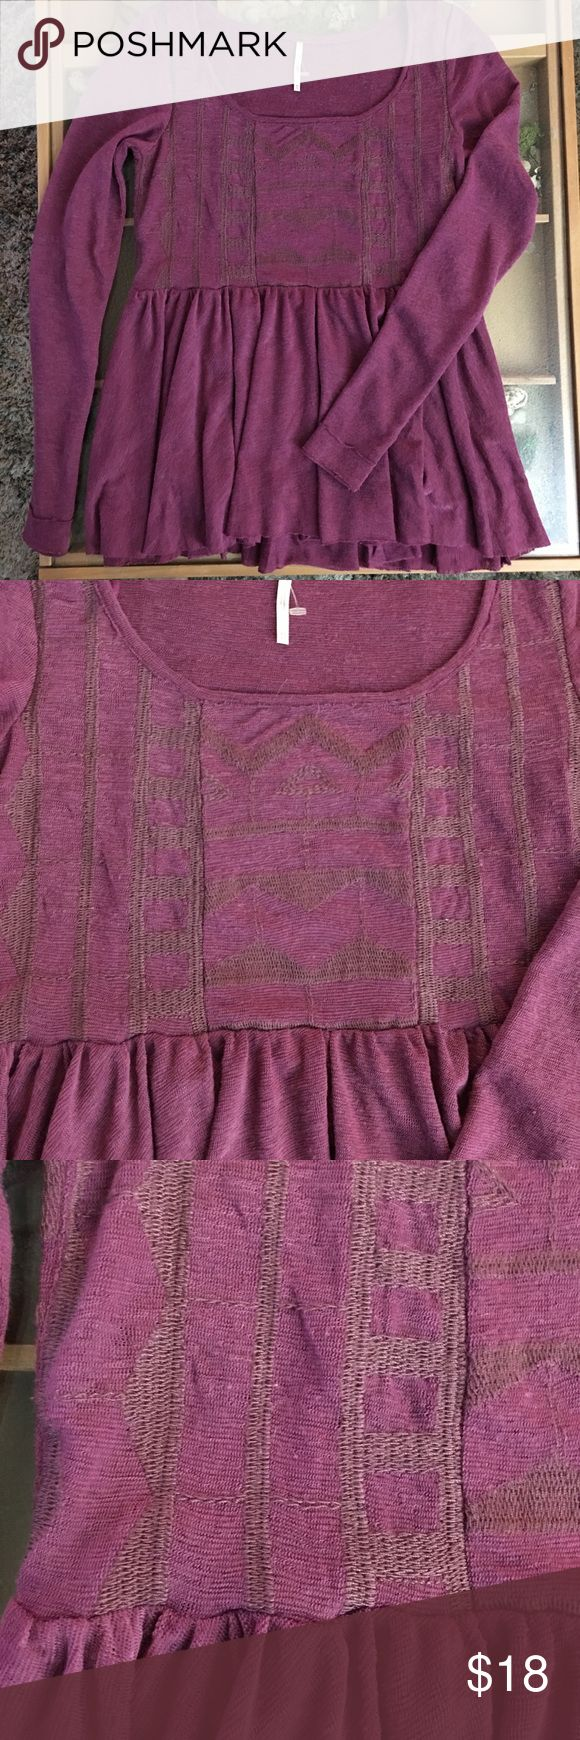 Free People long sleeve Aztec shirt The color is a pink/purple color and the the Aztec stitching is same shade just darker. Raw edging on cuffs and hemline. Free People Tops Blouses